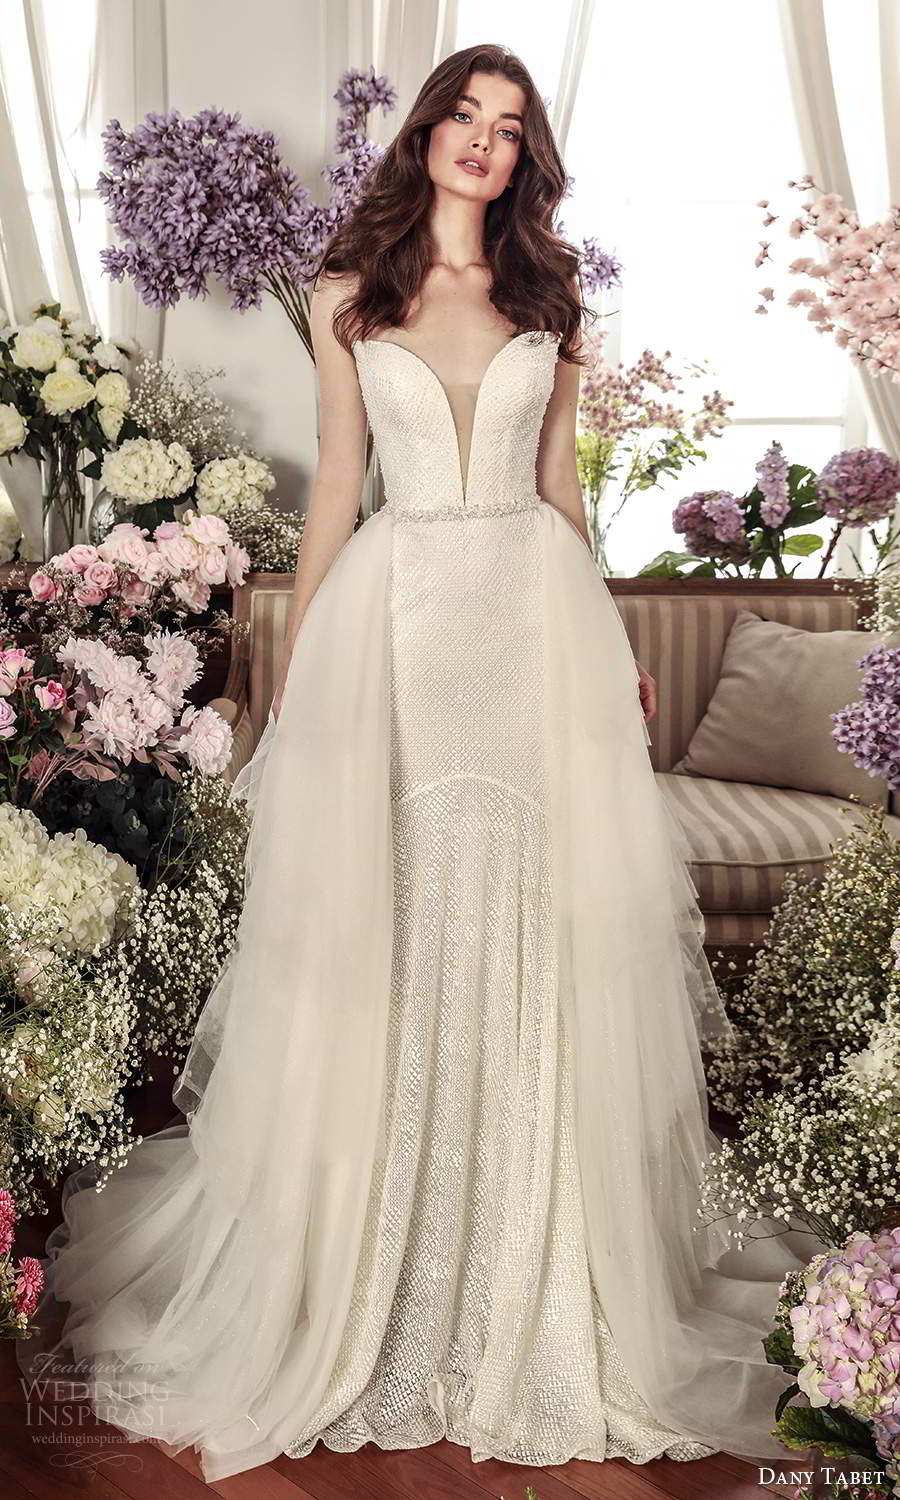 dany tabet 2021 belle fleur bridal strapless plunging sweetheart neckline fully embellished fit flare mermaid wedding dress chapel train a line ball gown overskirt (4) mv